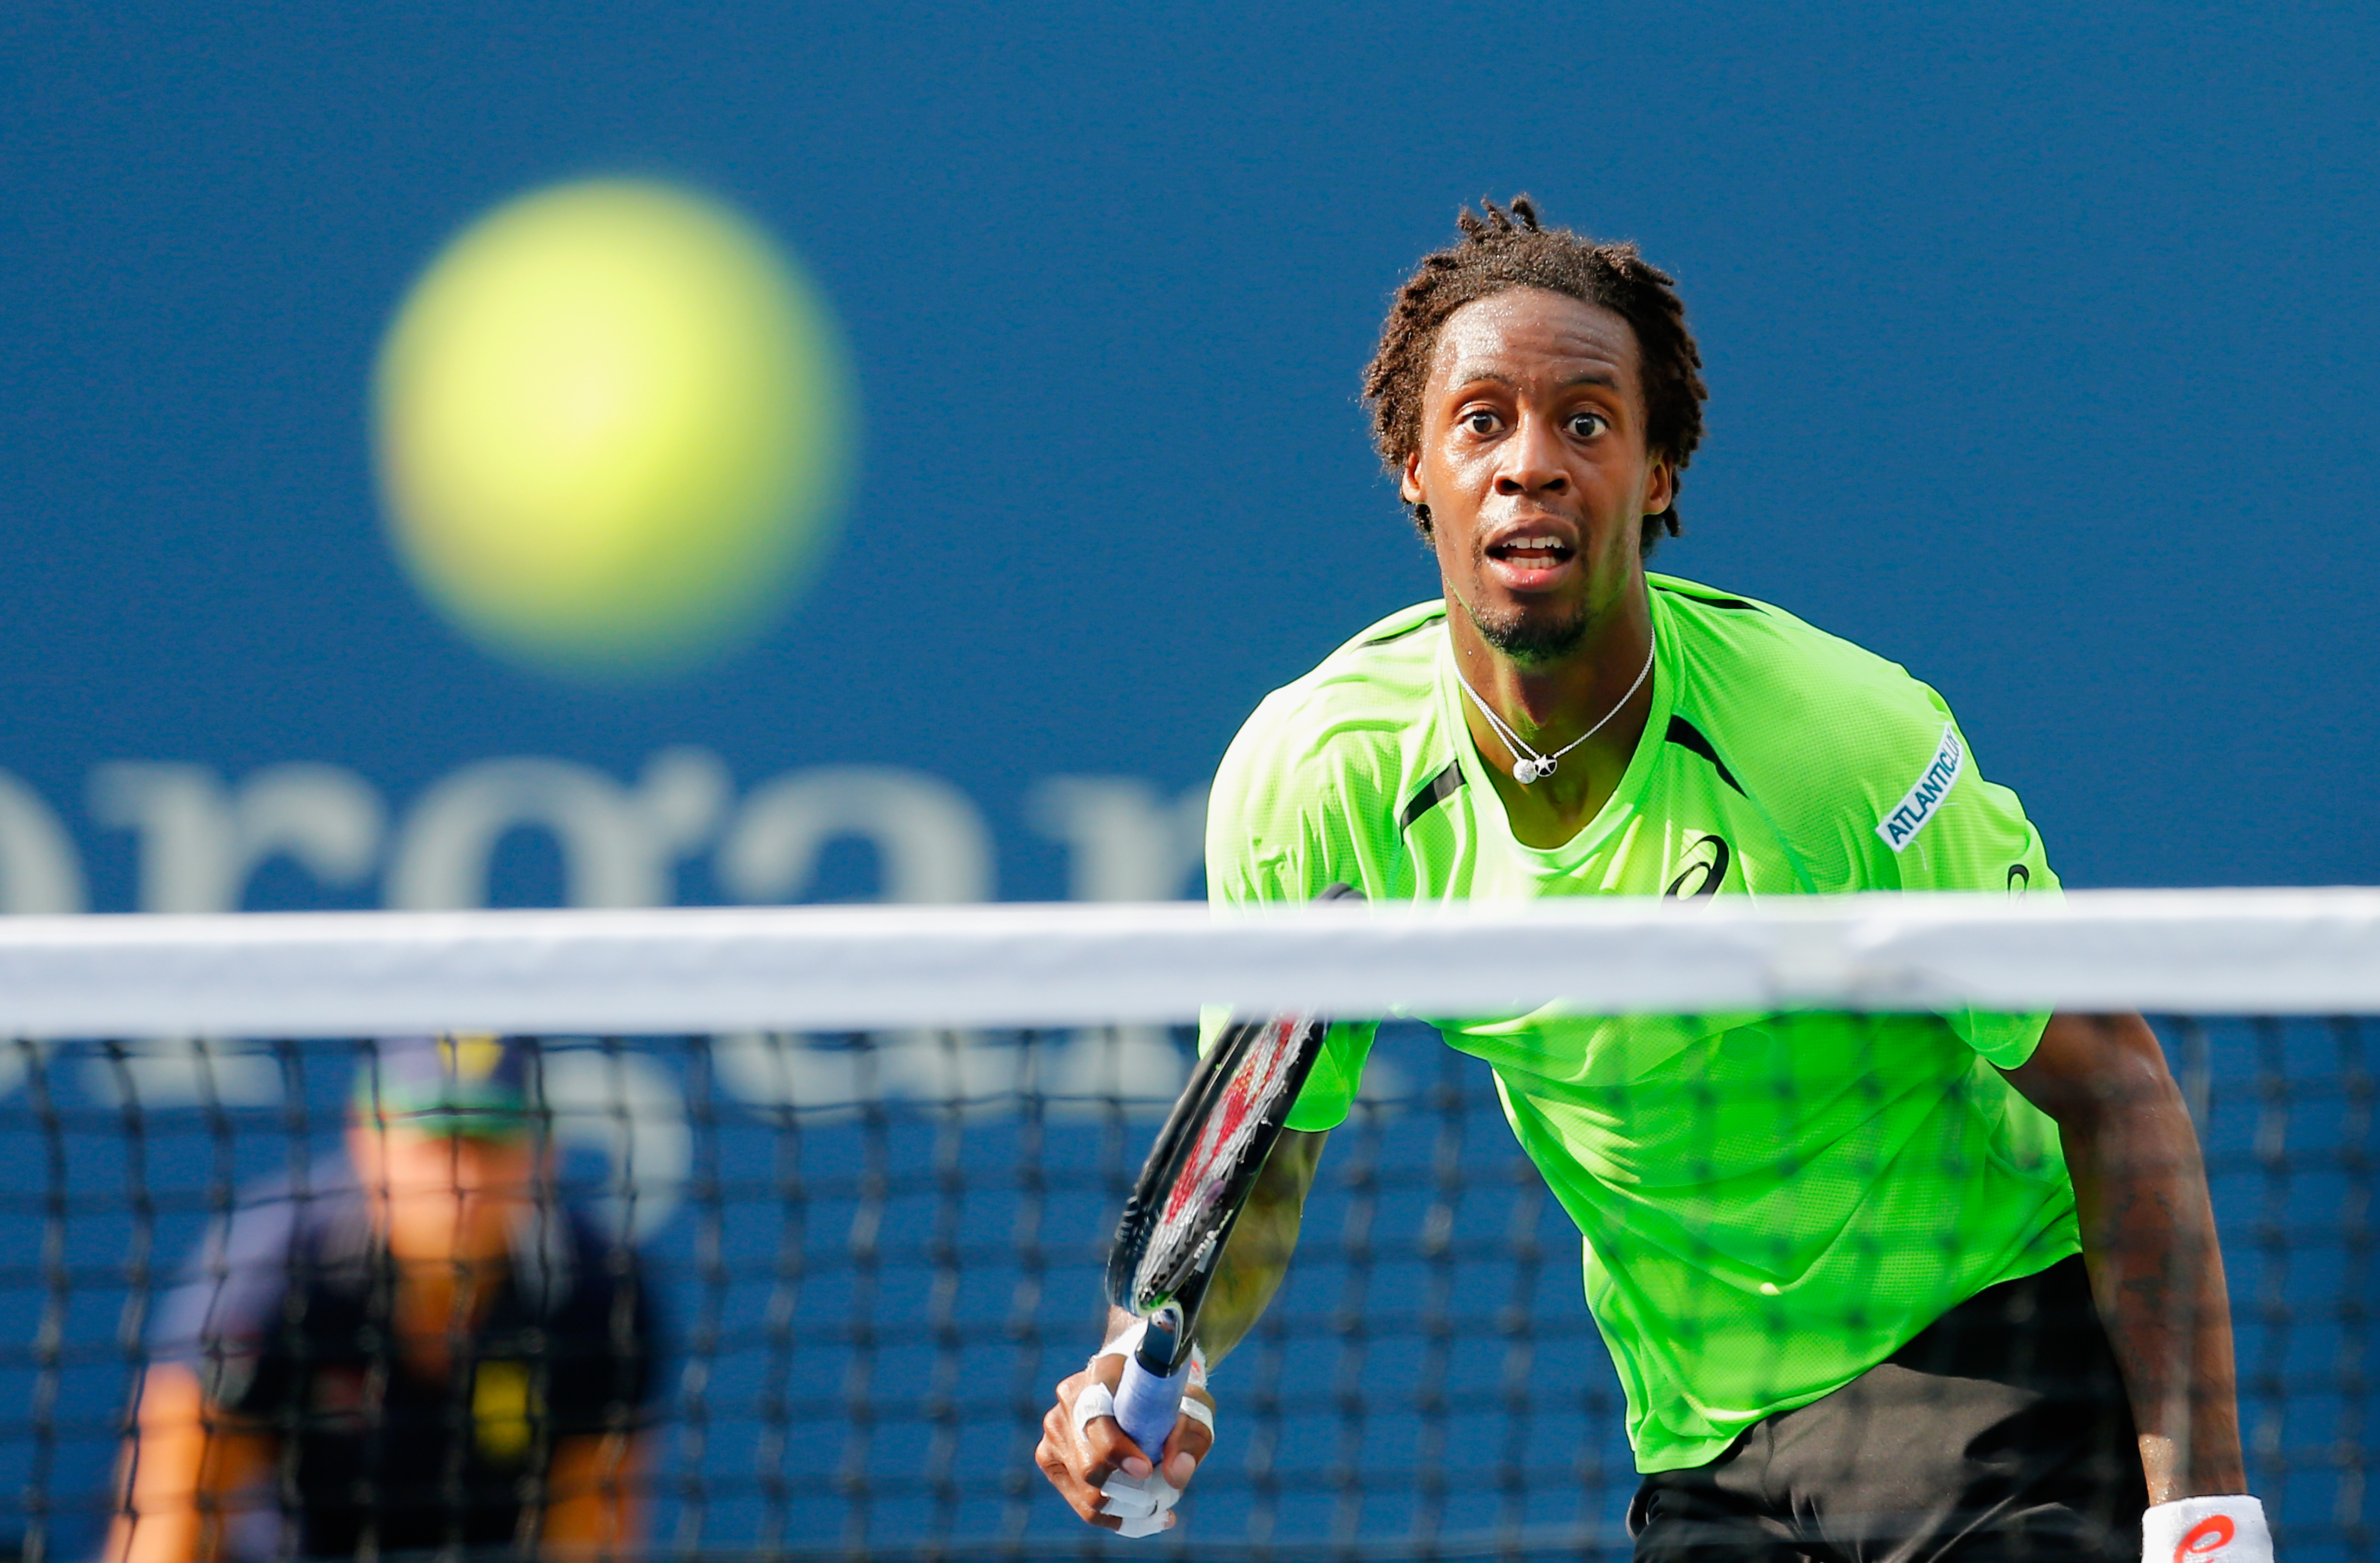 Gael Monfils of France returns a shot against Grigor Dimitrov of Bulgaria in their men's singles fourth round match on Day Nine of the 2014 US Open at the USTA Billie Jean King National Tennis Center on September 2, 2014 in Queens.